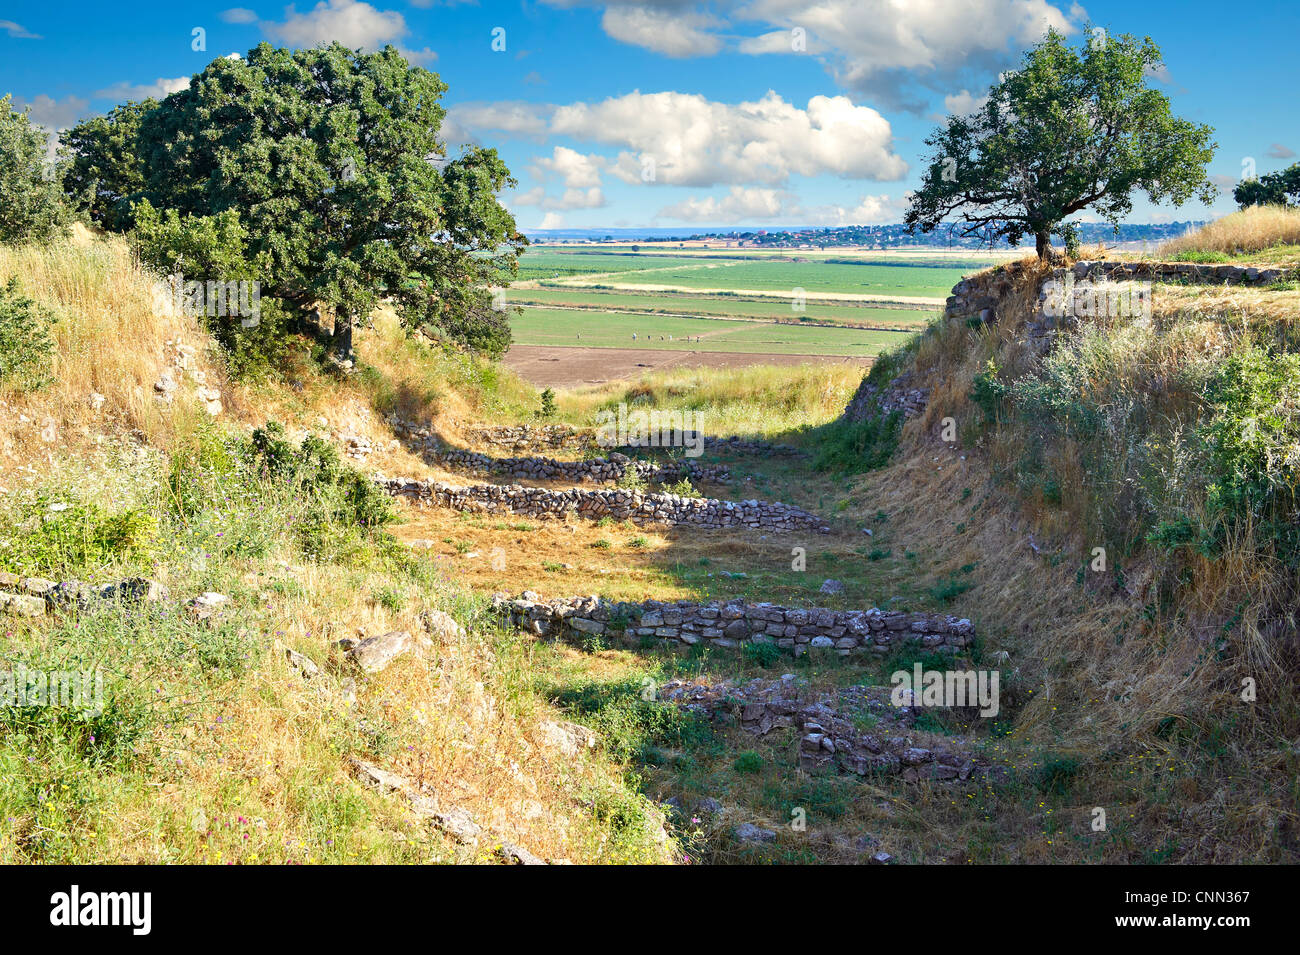 Part of the Schliemann Trench excavated from 1871.  Ancient Troy Archaeological site, Turkey - Stock Image